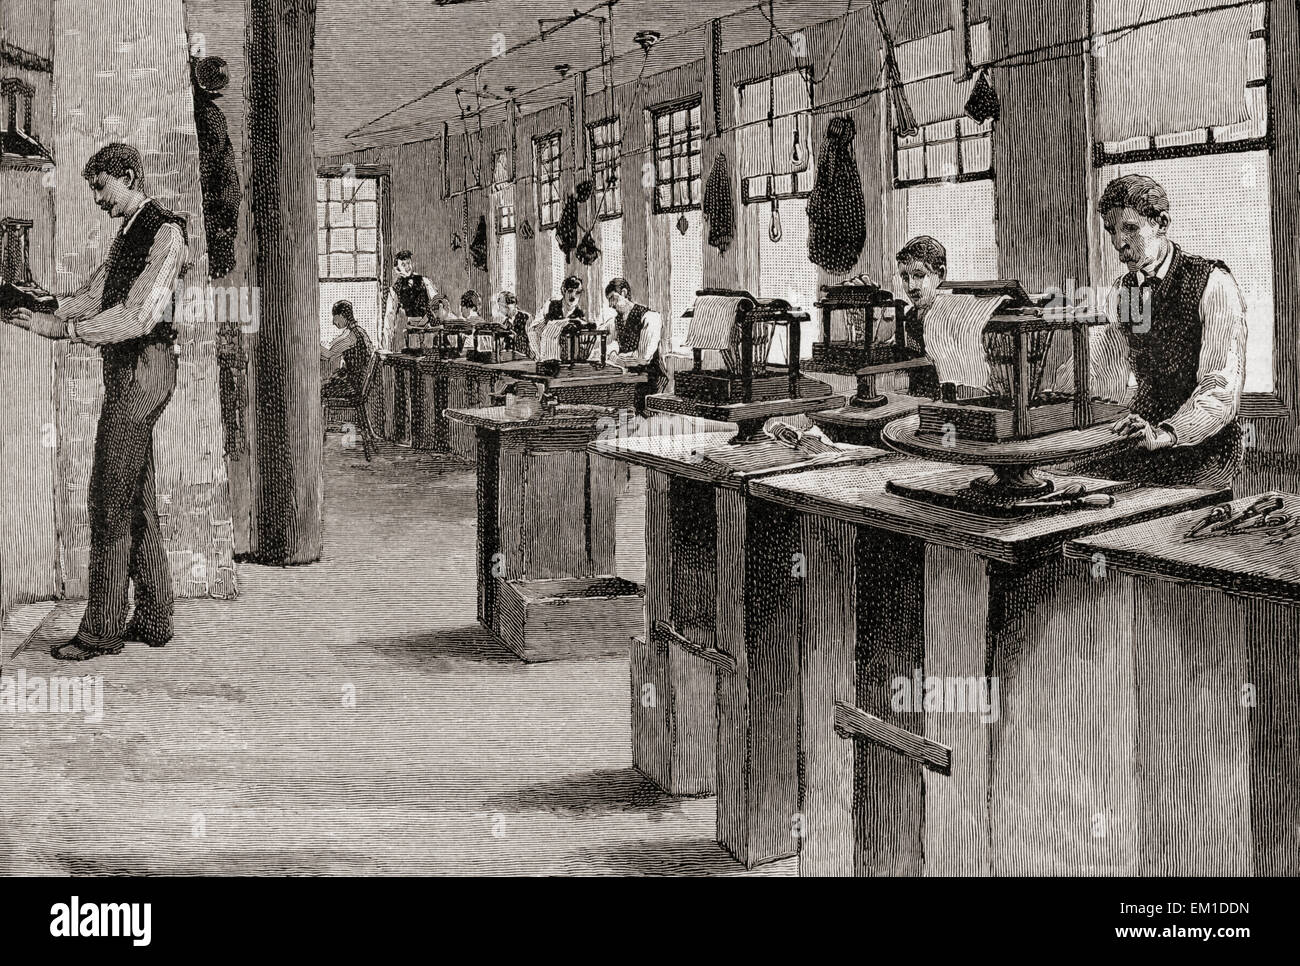 The alignment room in a 19th century printing works. - Stock Image